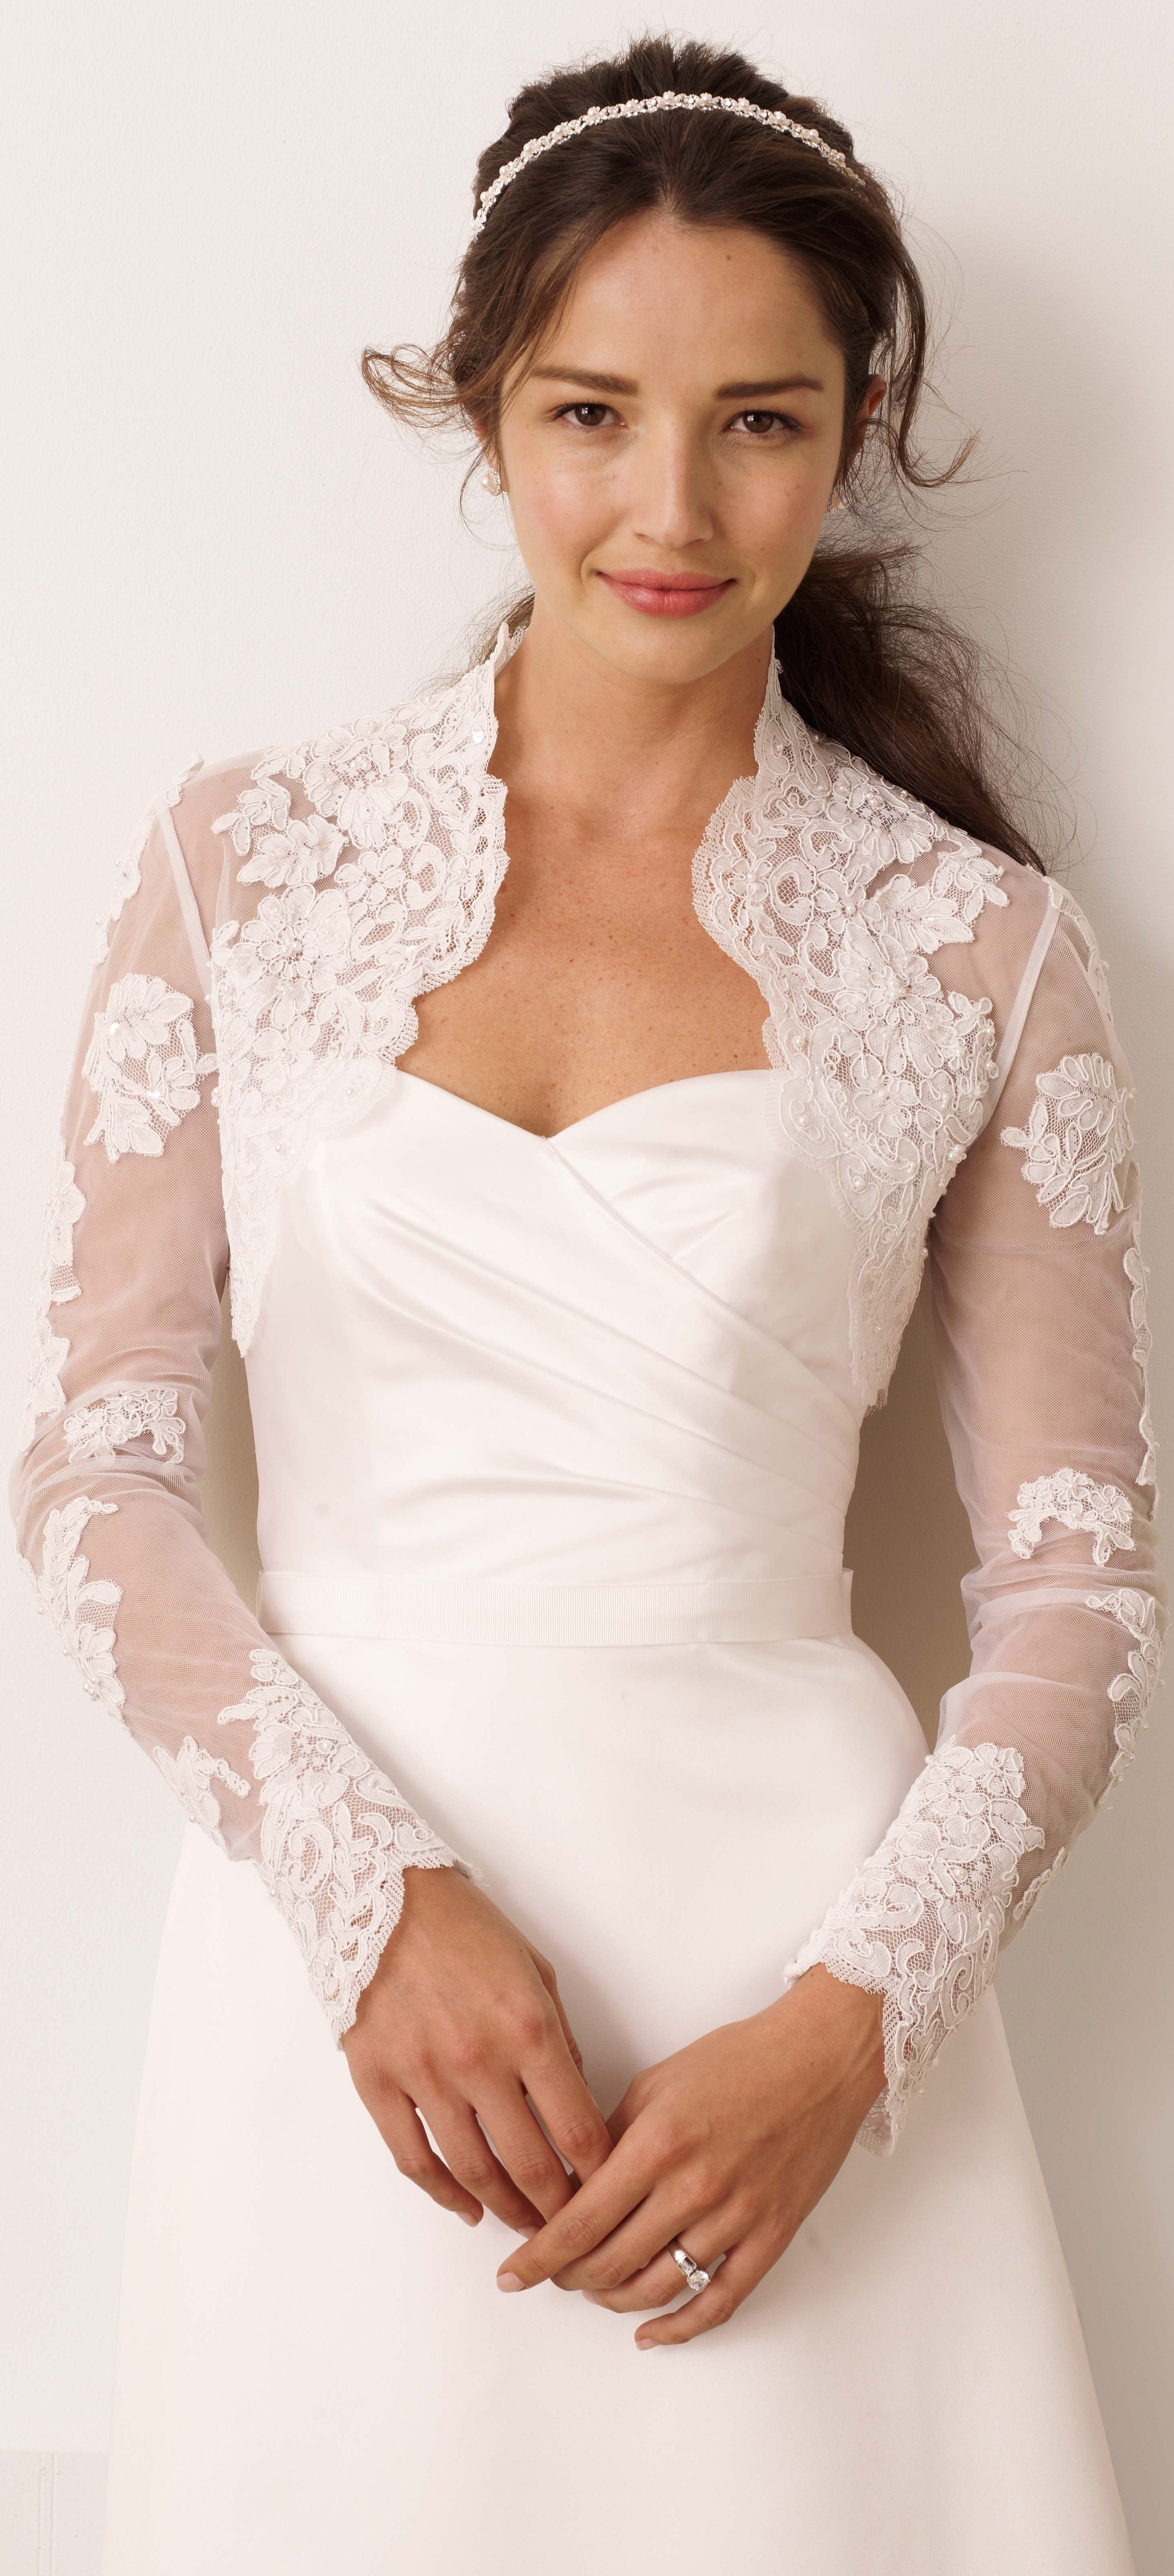 Wear to wedding dresses  Want a wedding dress with sleeves Buy a lacy bolero at someplace